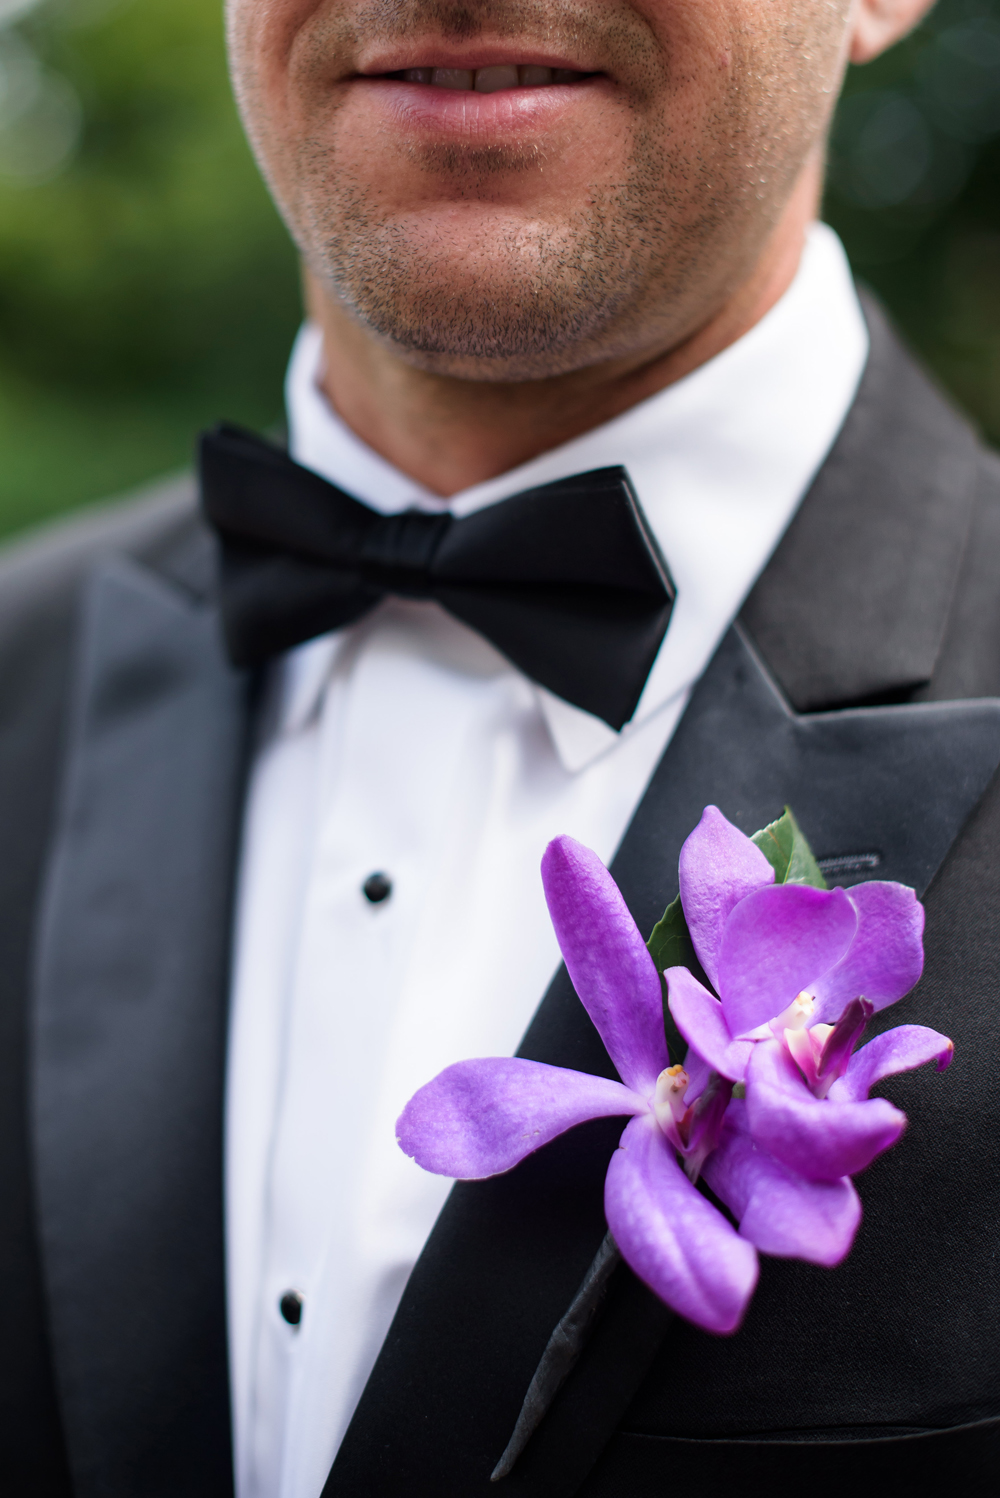 Pantone Color of the Year 2018 Ultra Violet wedding ideas boutonniere for groom